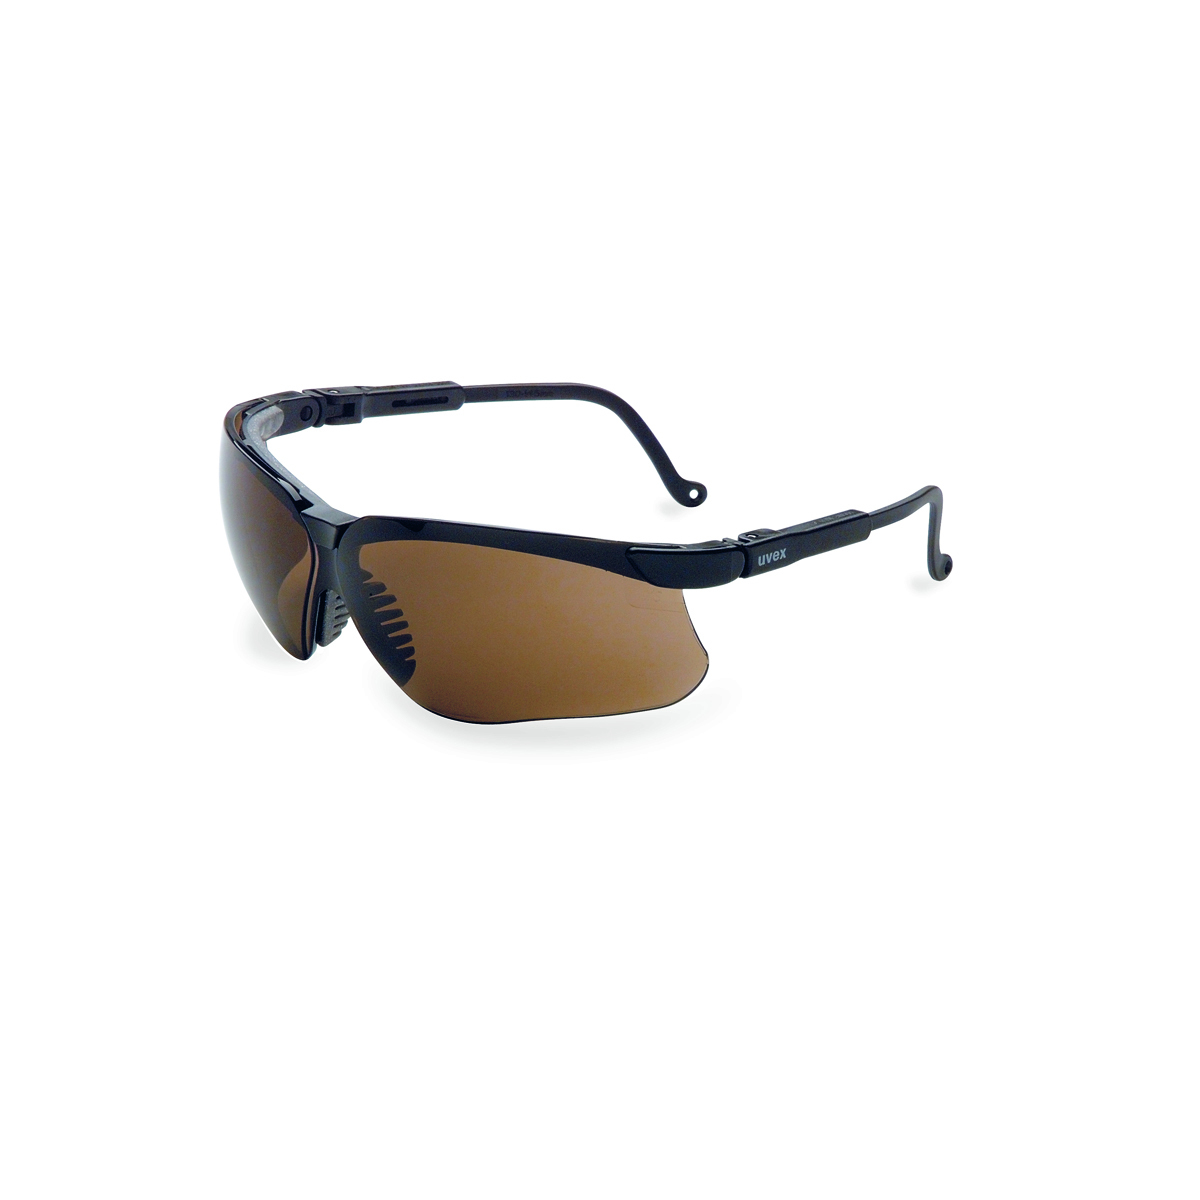 8d61b072f7 Uvex® by Honeywell Genesis Black Safety Glasses With Brown Polycarbonate  Hydroshield® Anti-Fog